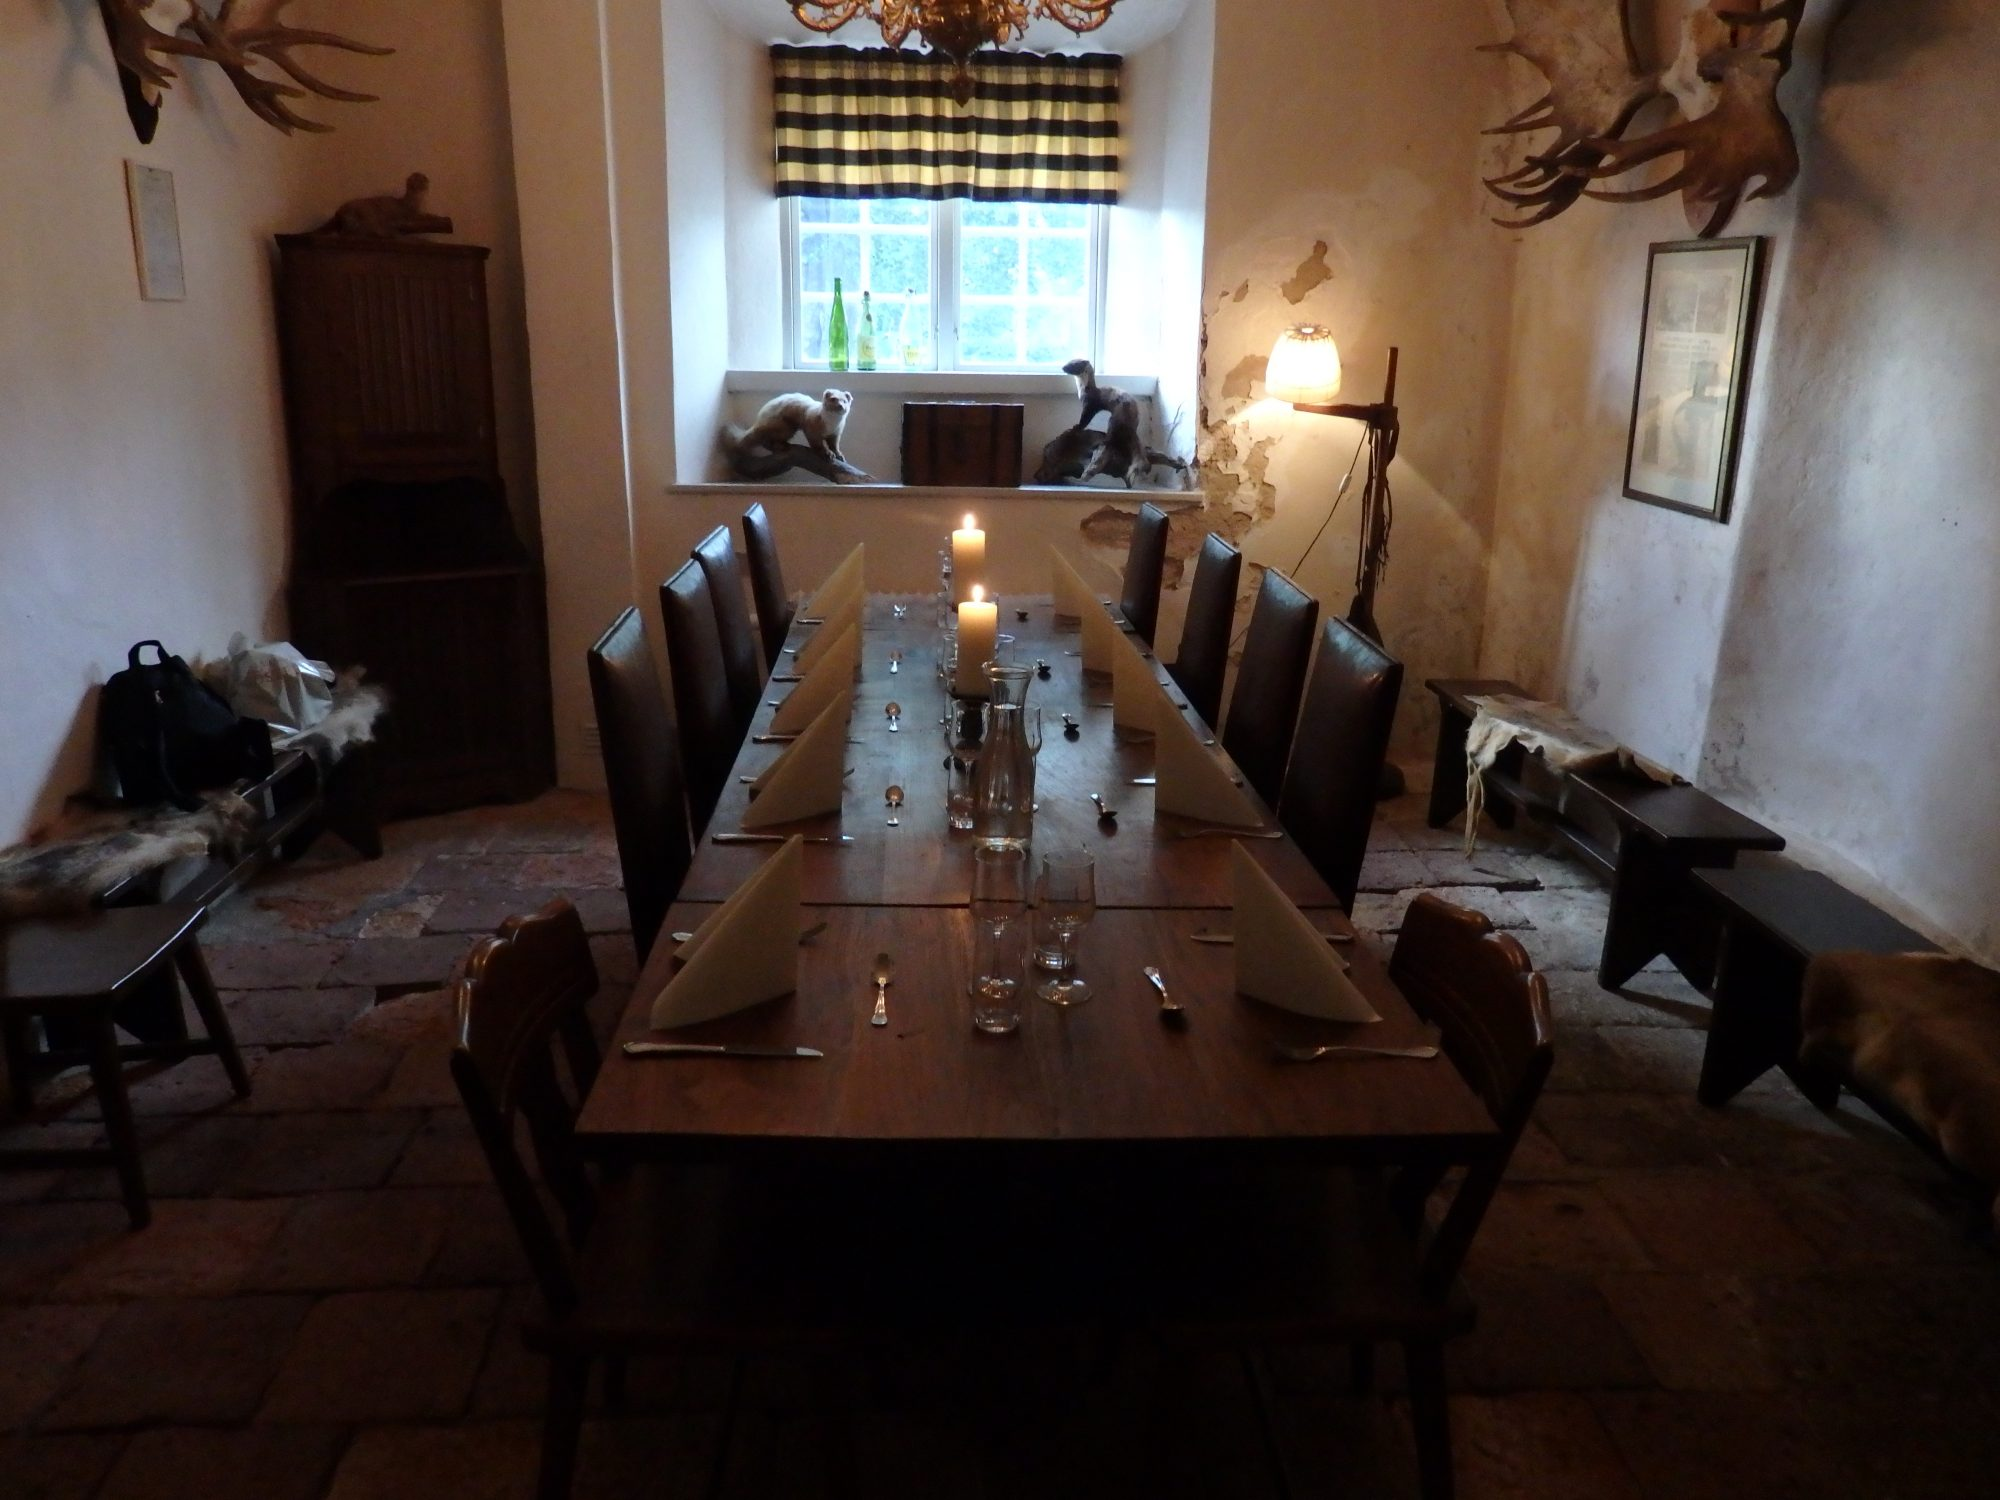 one of the rooms in the restaurant in Öster Malma. Notice the animal trophies.